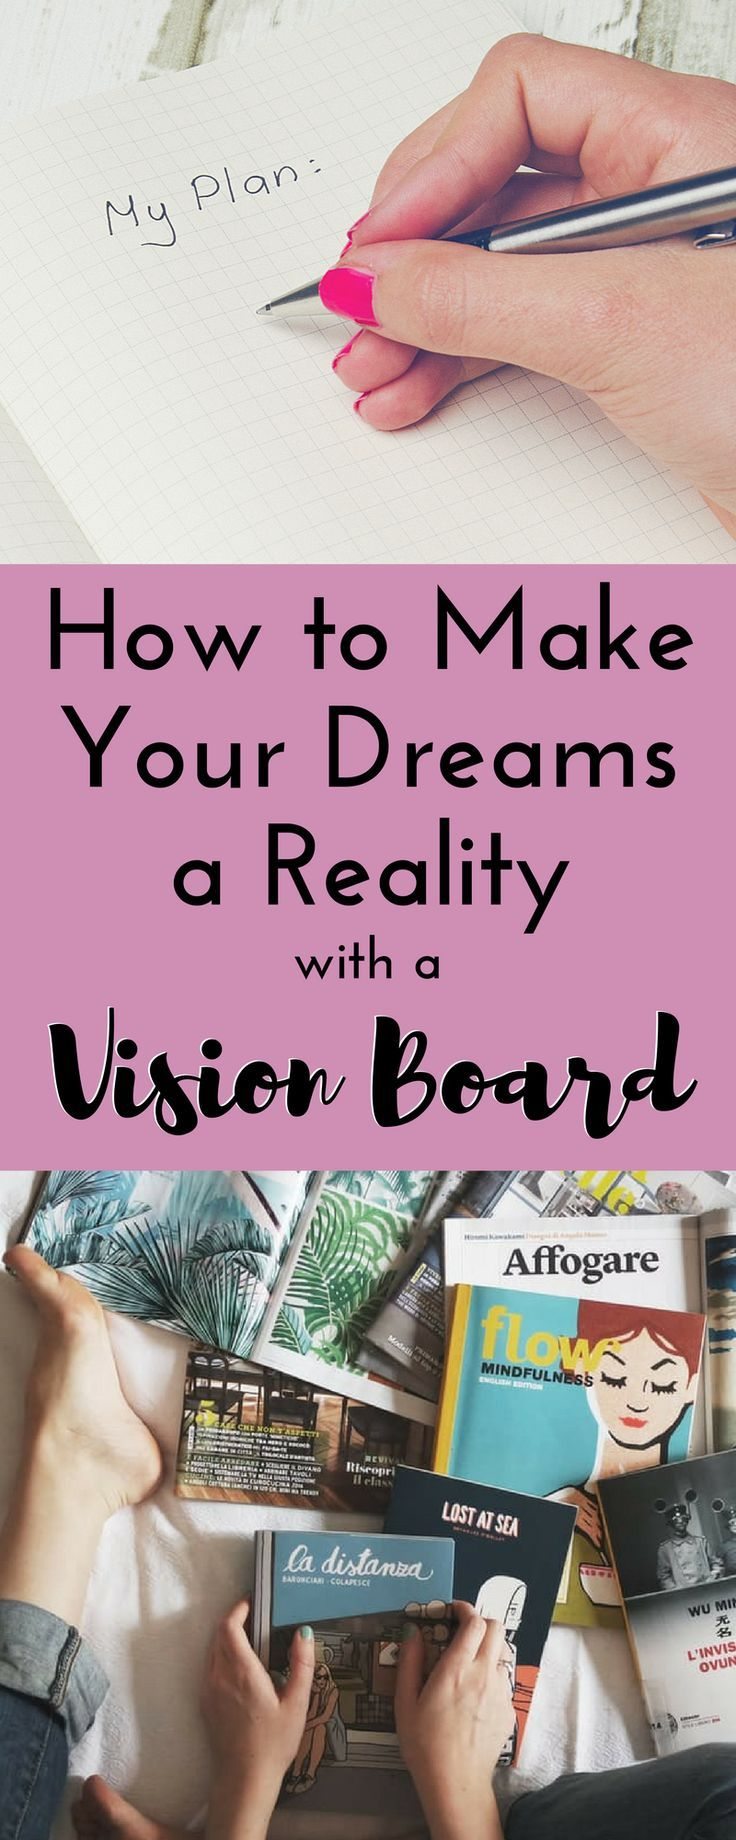 Visualization Is A Proven Tool To Help You Reach Your Goals, Which Is Why I  Believe A Vision Board Is So Effective! I Am Sharing Step By Step Tips To  Make A ...